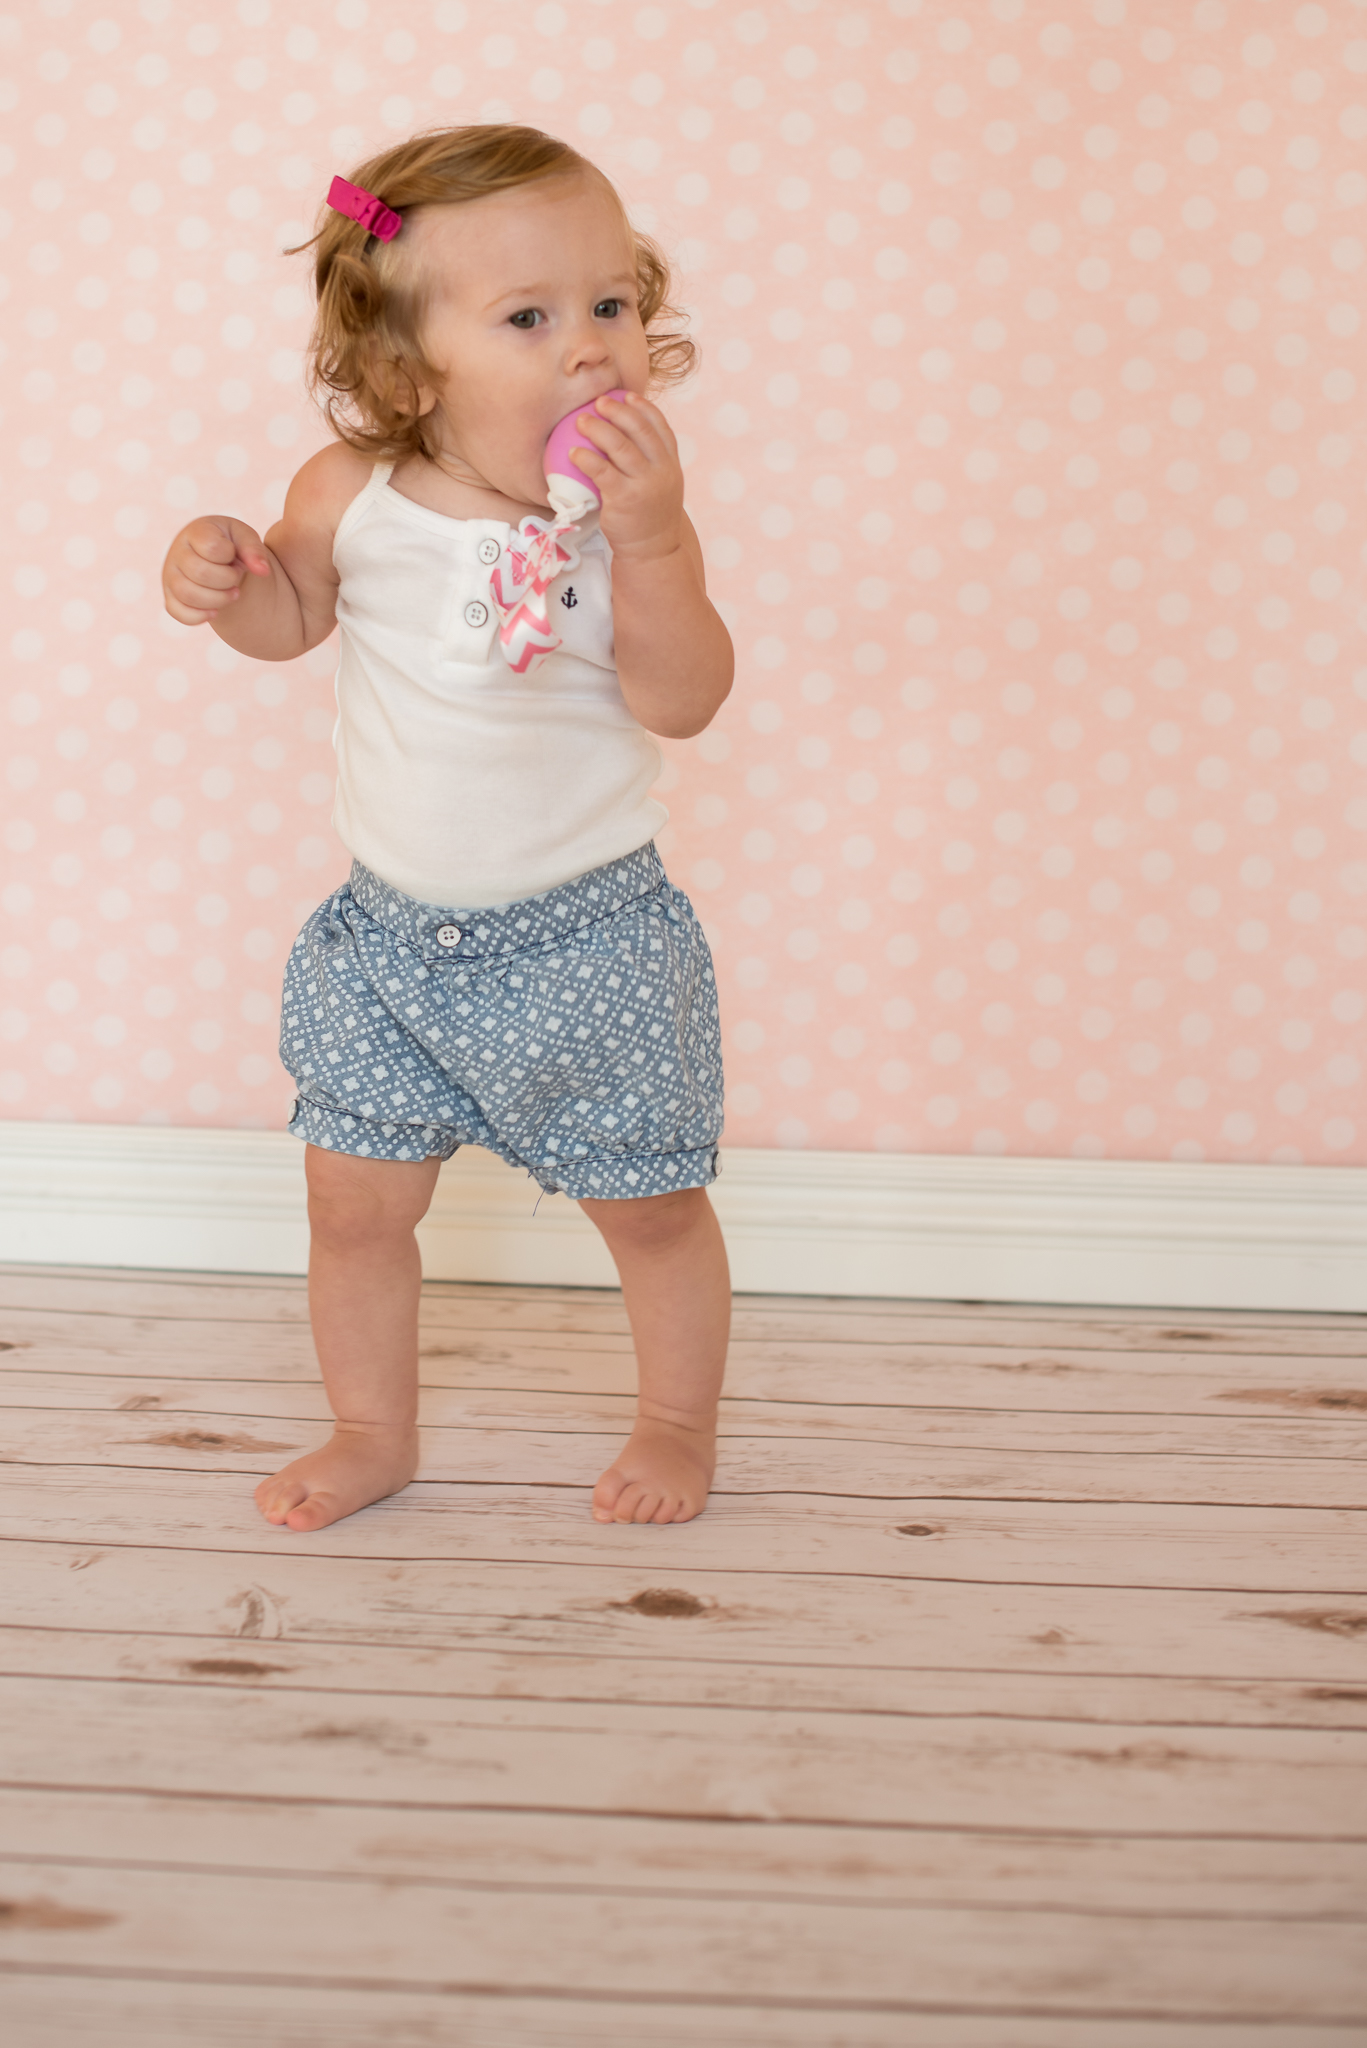 The Teething Egg A New Innovative Soother To Pacify Baby Teething